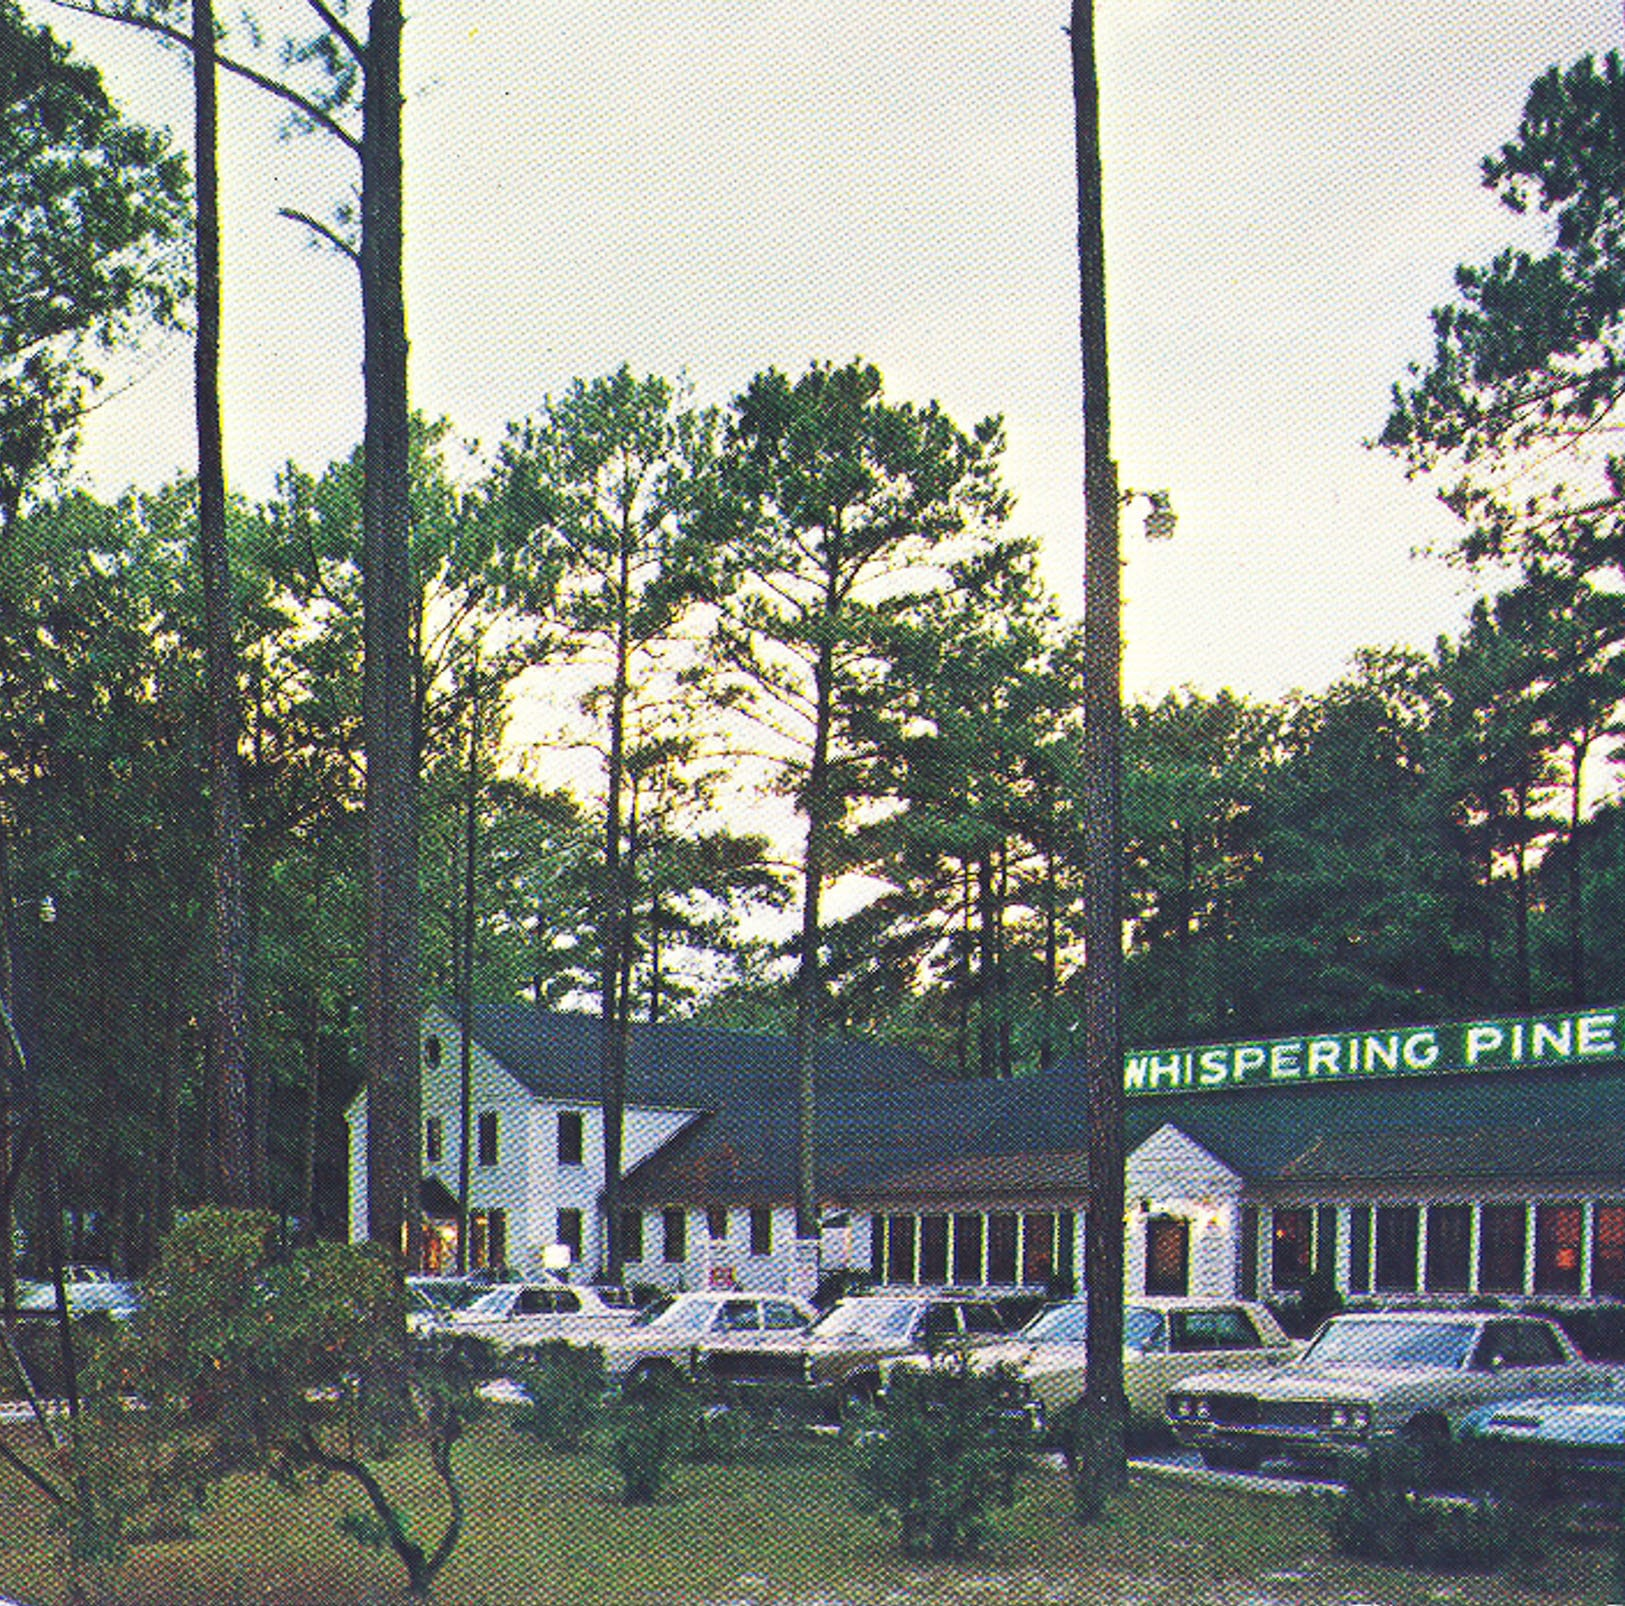 Whispering Pines Motel demolition contract awarded